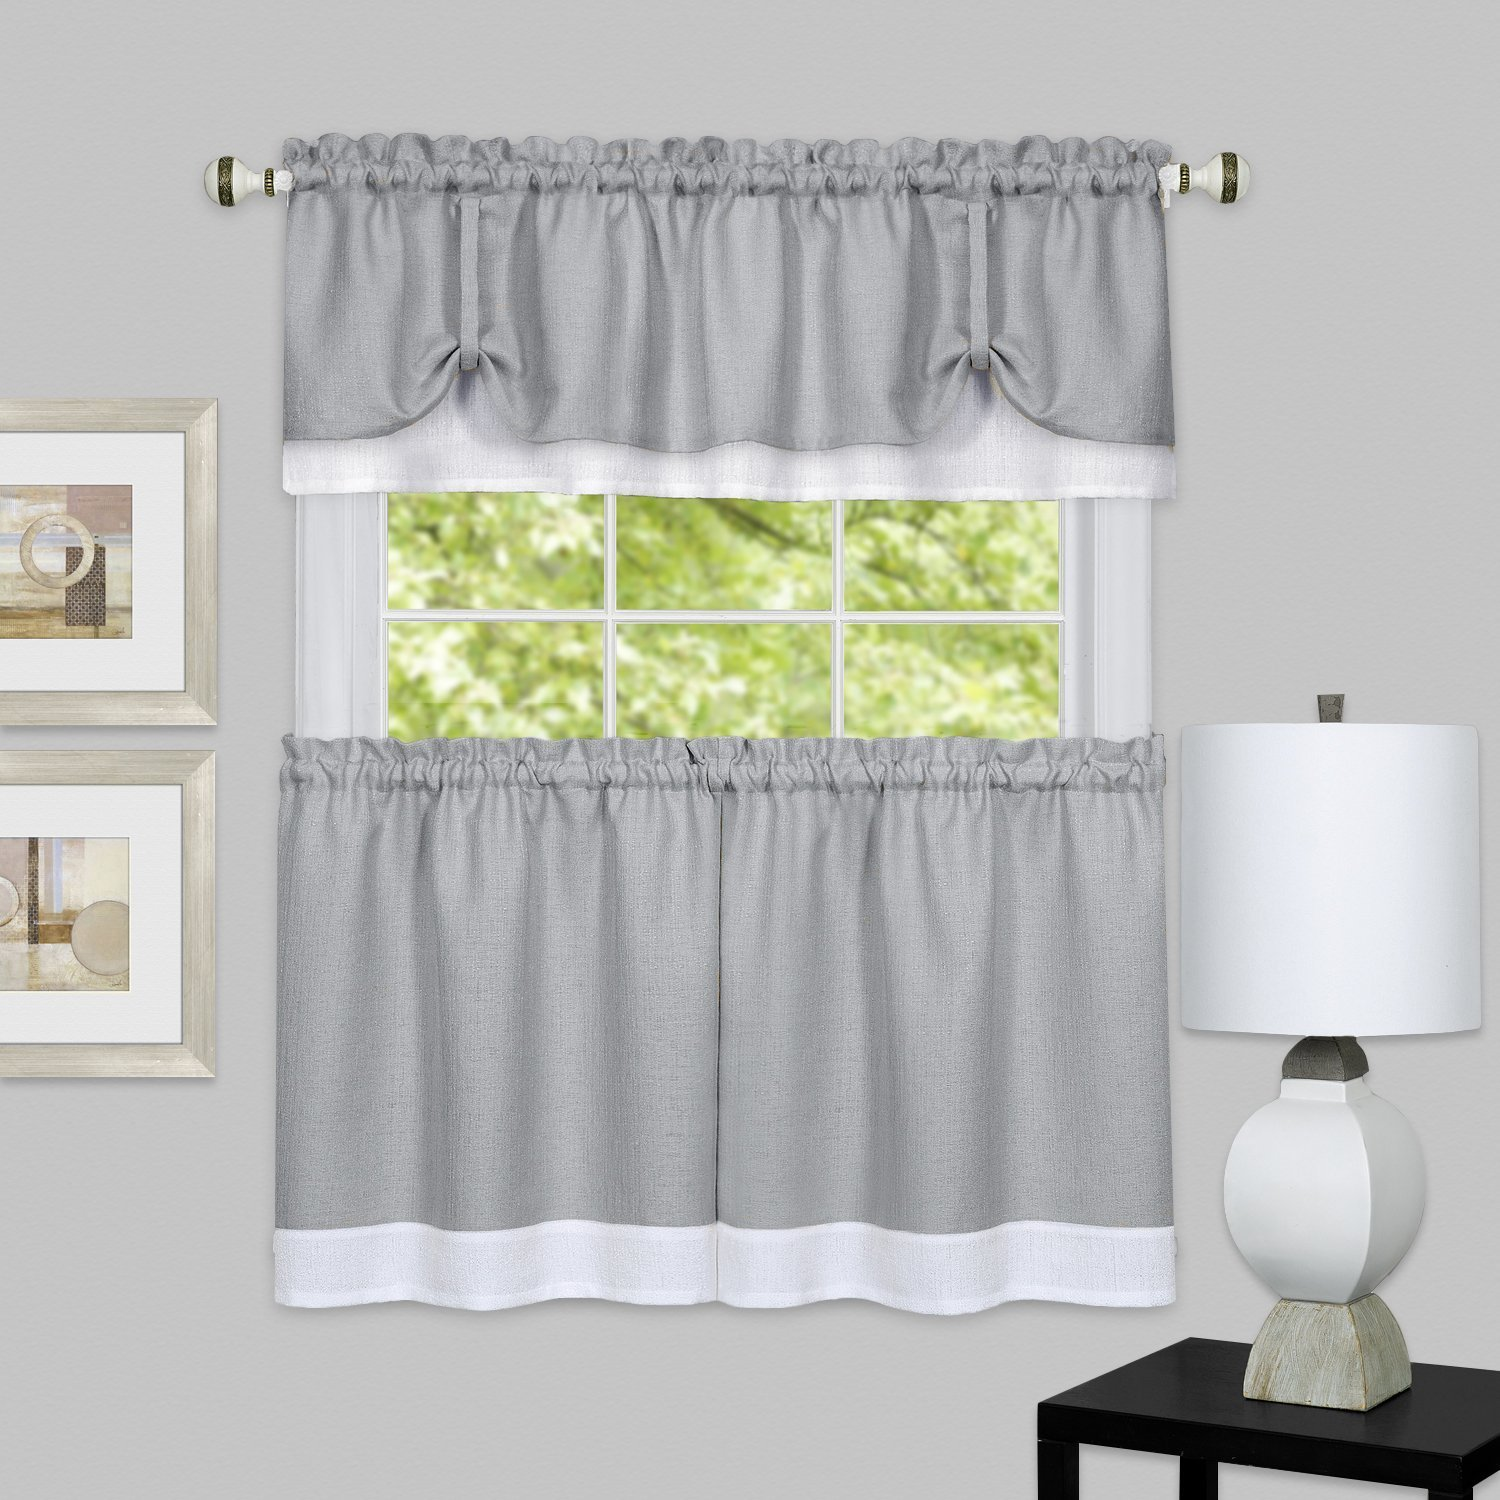 Kitchen Curtains And Valances: Kitchen Curtains Set: Amazon.com